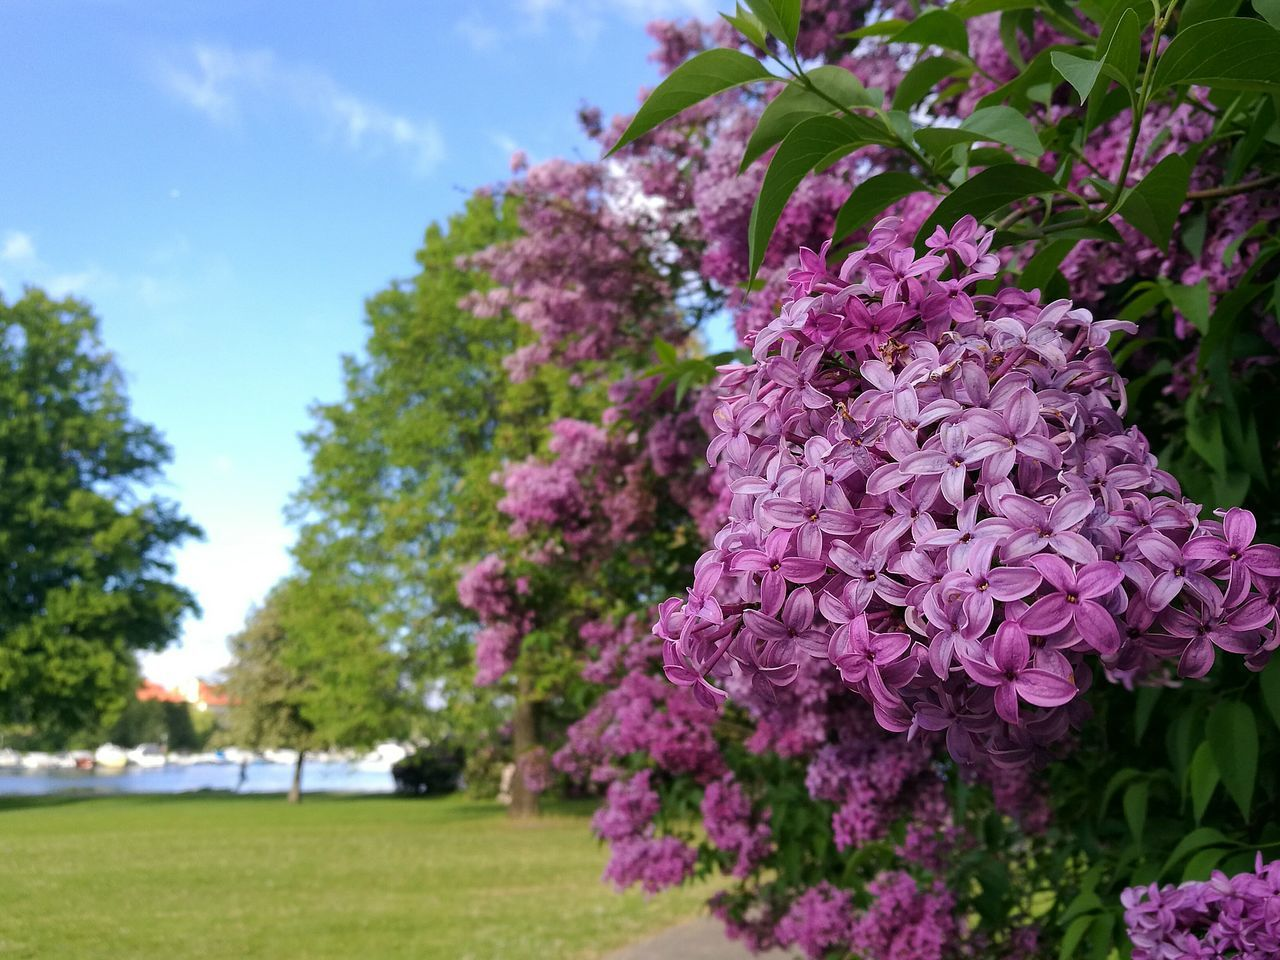 Djurgården Sweden Park Park - Man Made Space Lilacs Blossoms  Blossoming  Flower Flowers Flowers,Plants & Garden Blossom Nature Beauty In Nature Outdoors Freshness Scenics Landscape Sky Cloud - Sky Lilac Blossoms Park Path Blossom And Blue Sky HuaweiP9 Park Flowers Sunny Afternoon